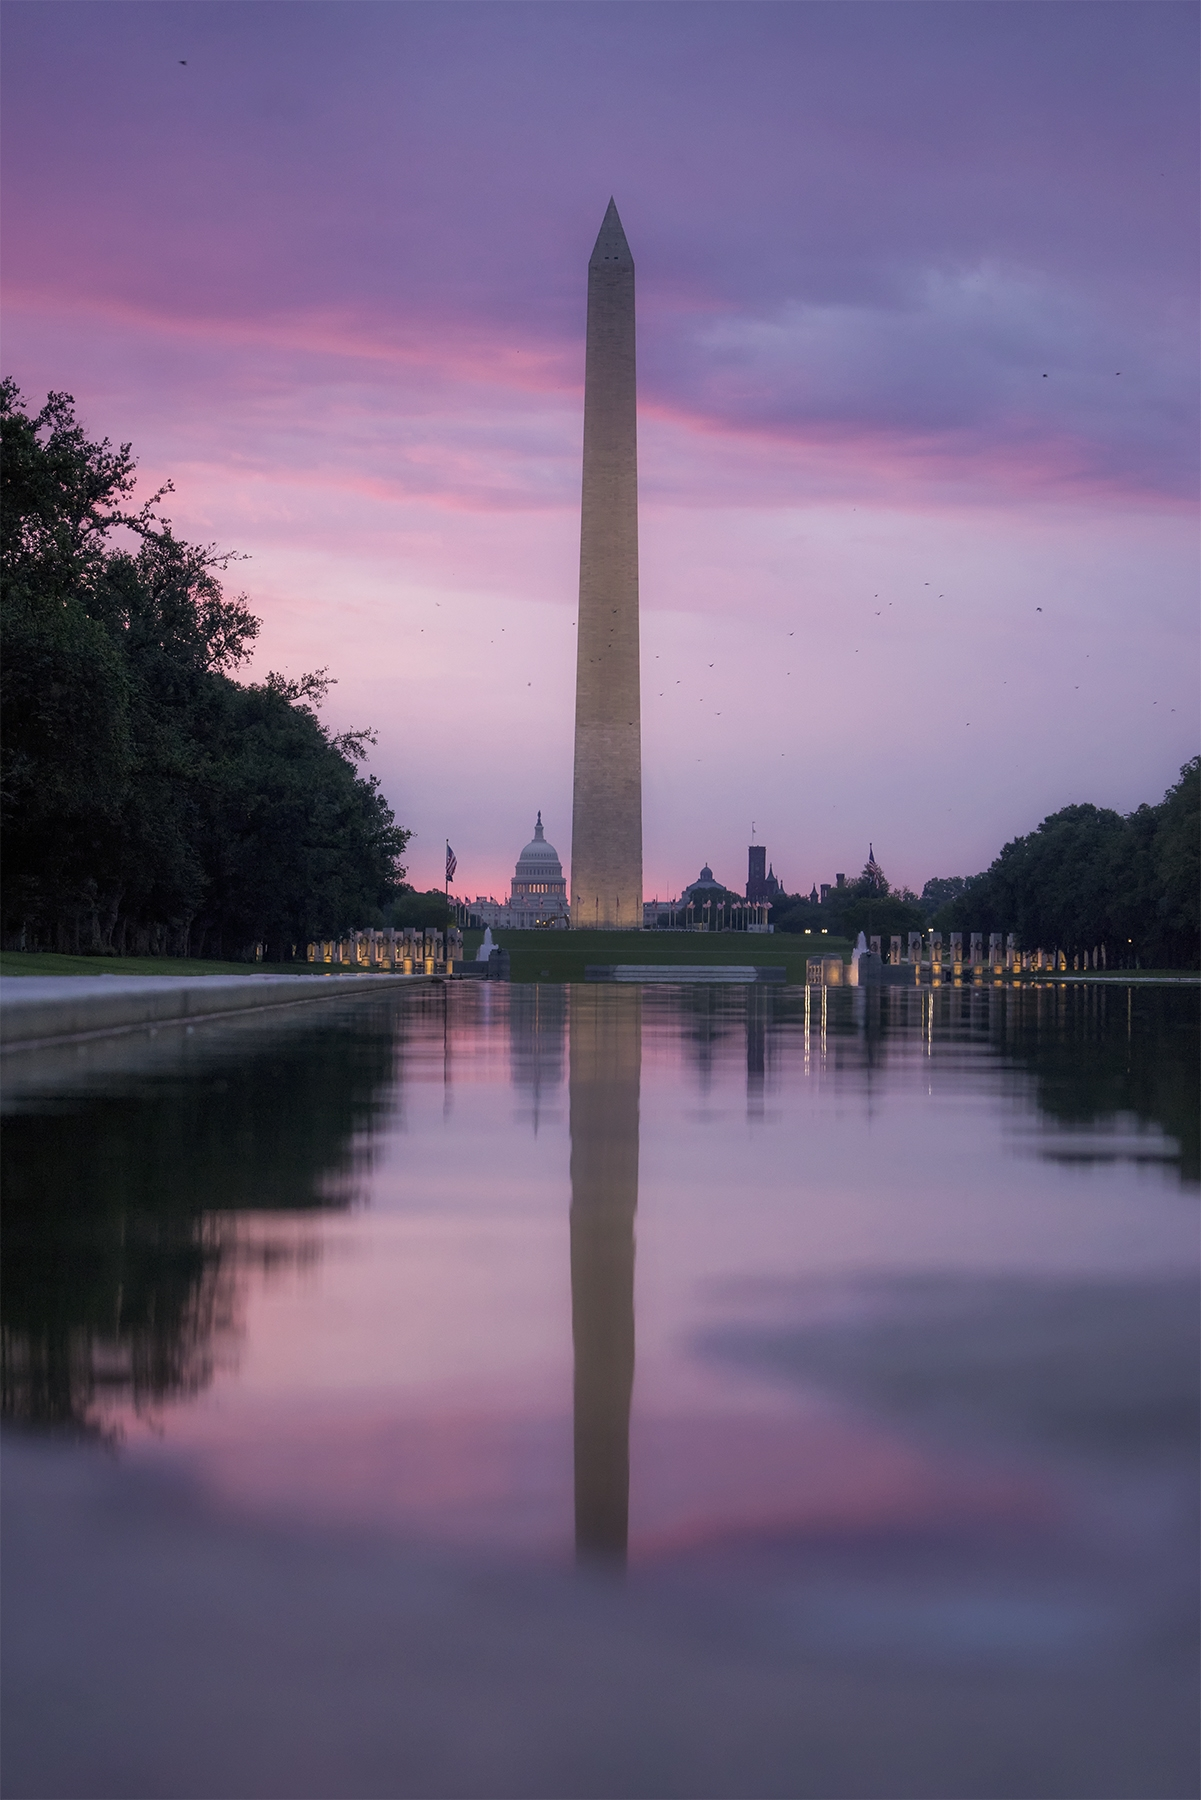 washington dc, national mall, sunrise, lincoln memorial, reflecting pool, washington monument, birds, pigeons, us capitol building, us capitol, best view in dc, visit, travel